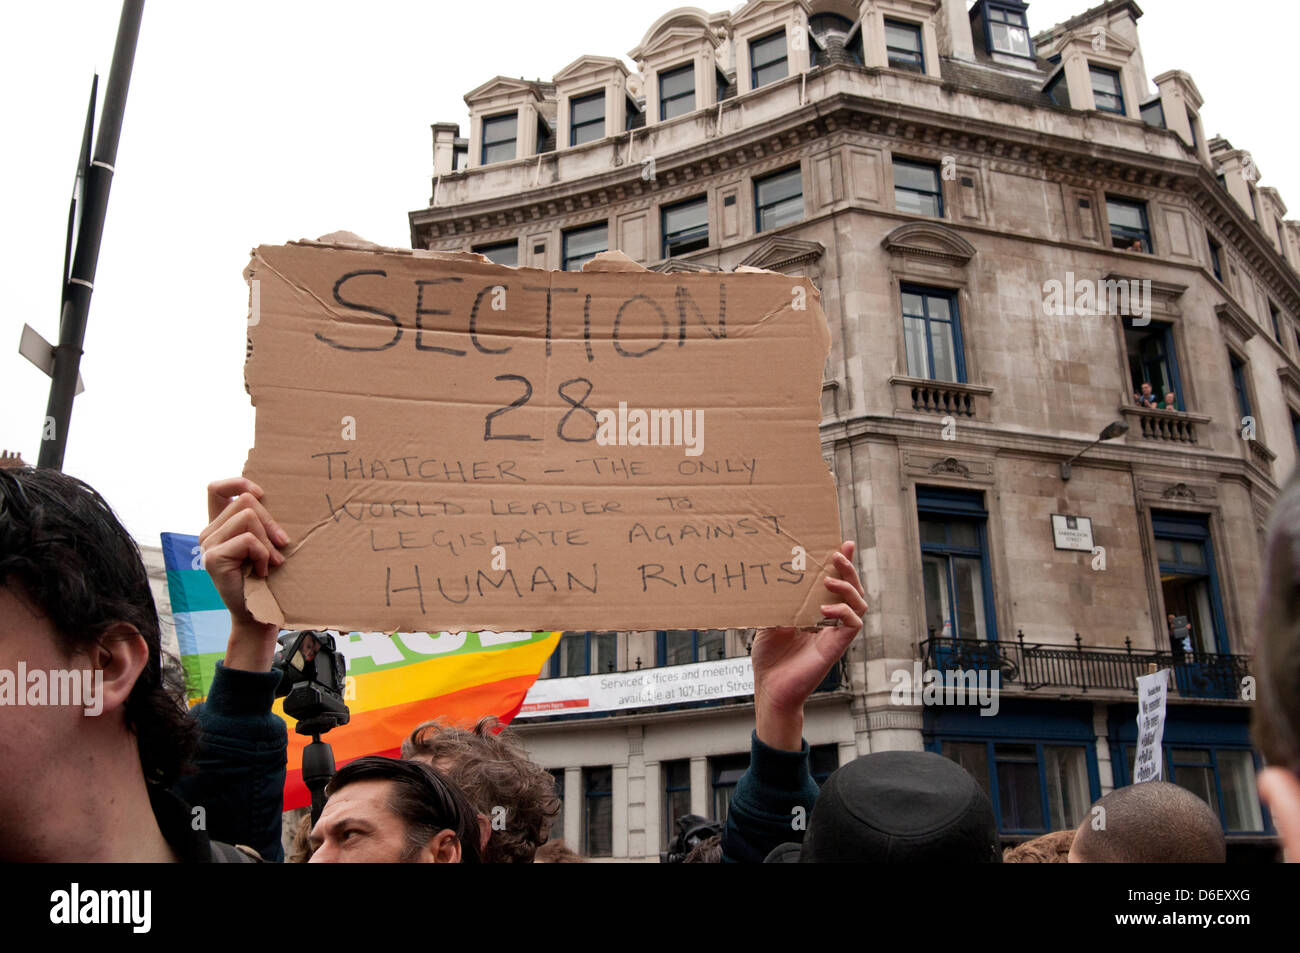 London, England UK 17/04/2013. A protester holds up a placard during a protest against honouring ex prime minister - Stock Image